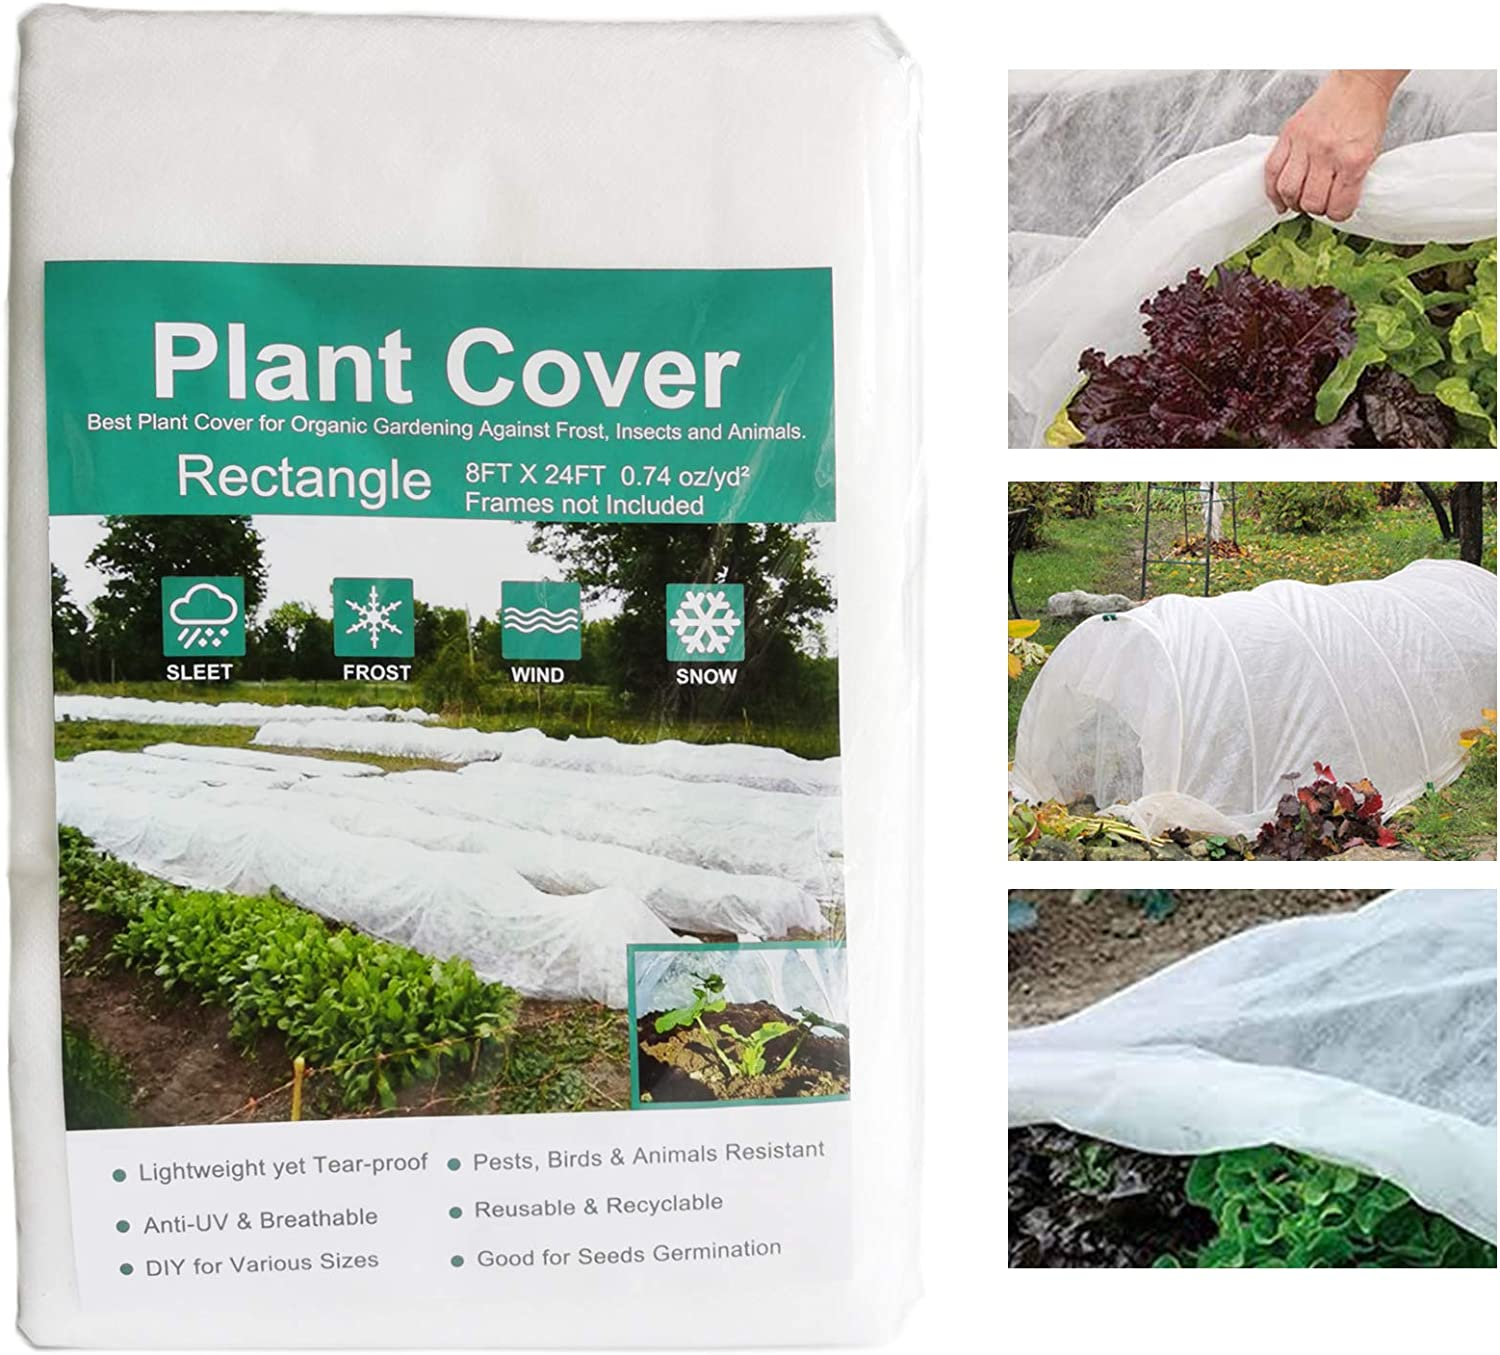 N/P Plant Covers Freeze Protection 0.74oz 8FT x 24FT, Plant Blankets for Cold Weather, Plant Row Cover Garden Covers for Winter Frost Protection